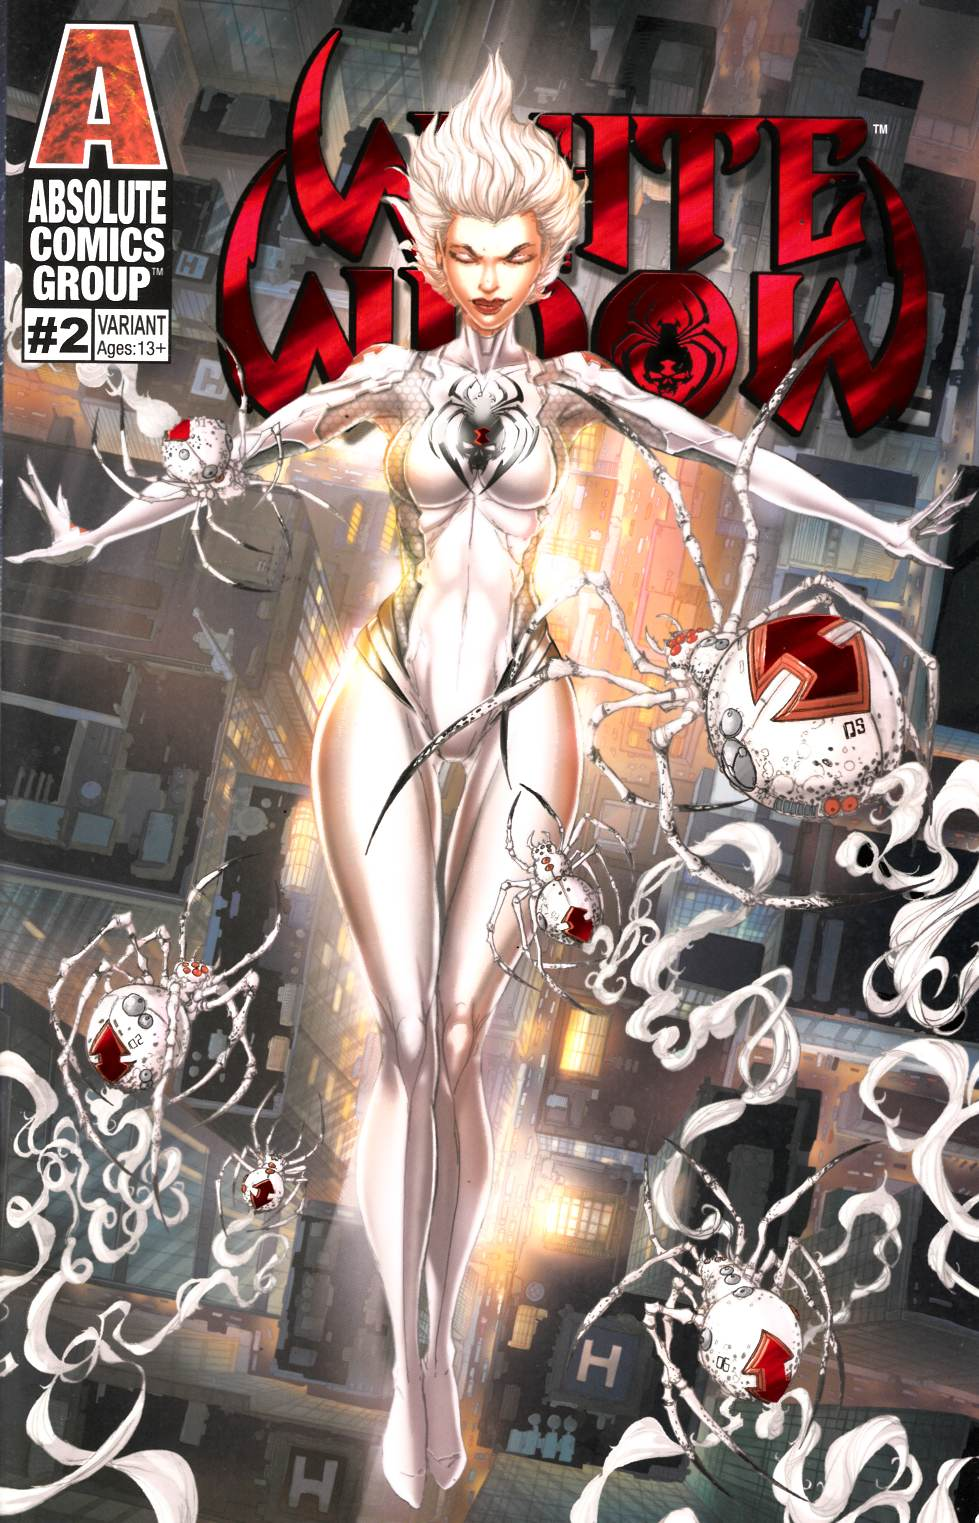 White Widow #2 Nightfall Variant Cover Near Mint (9.4) [Absolute Comic] THUMBNAIL